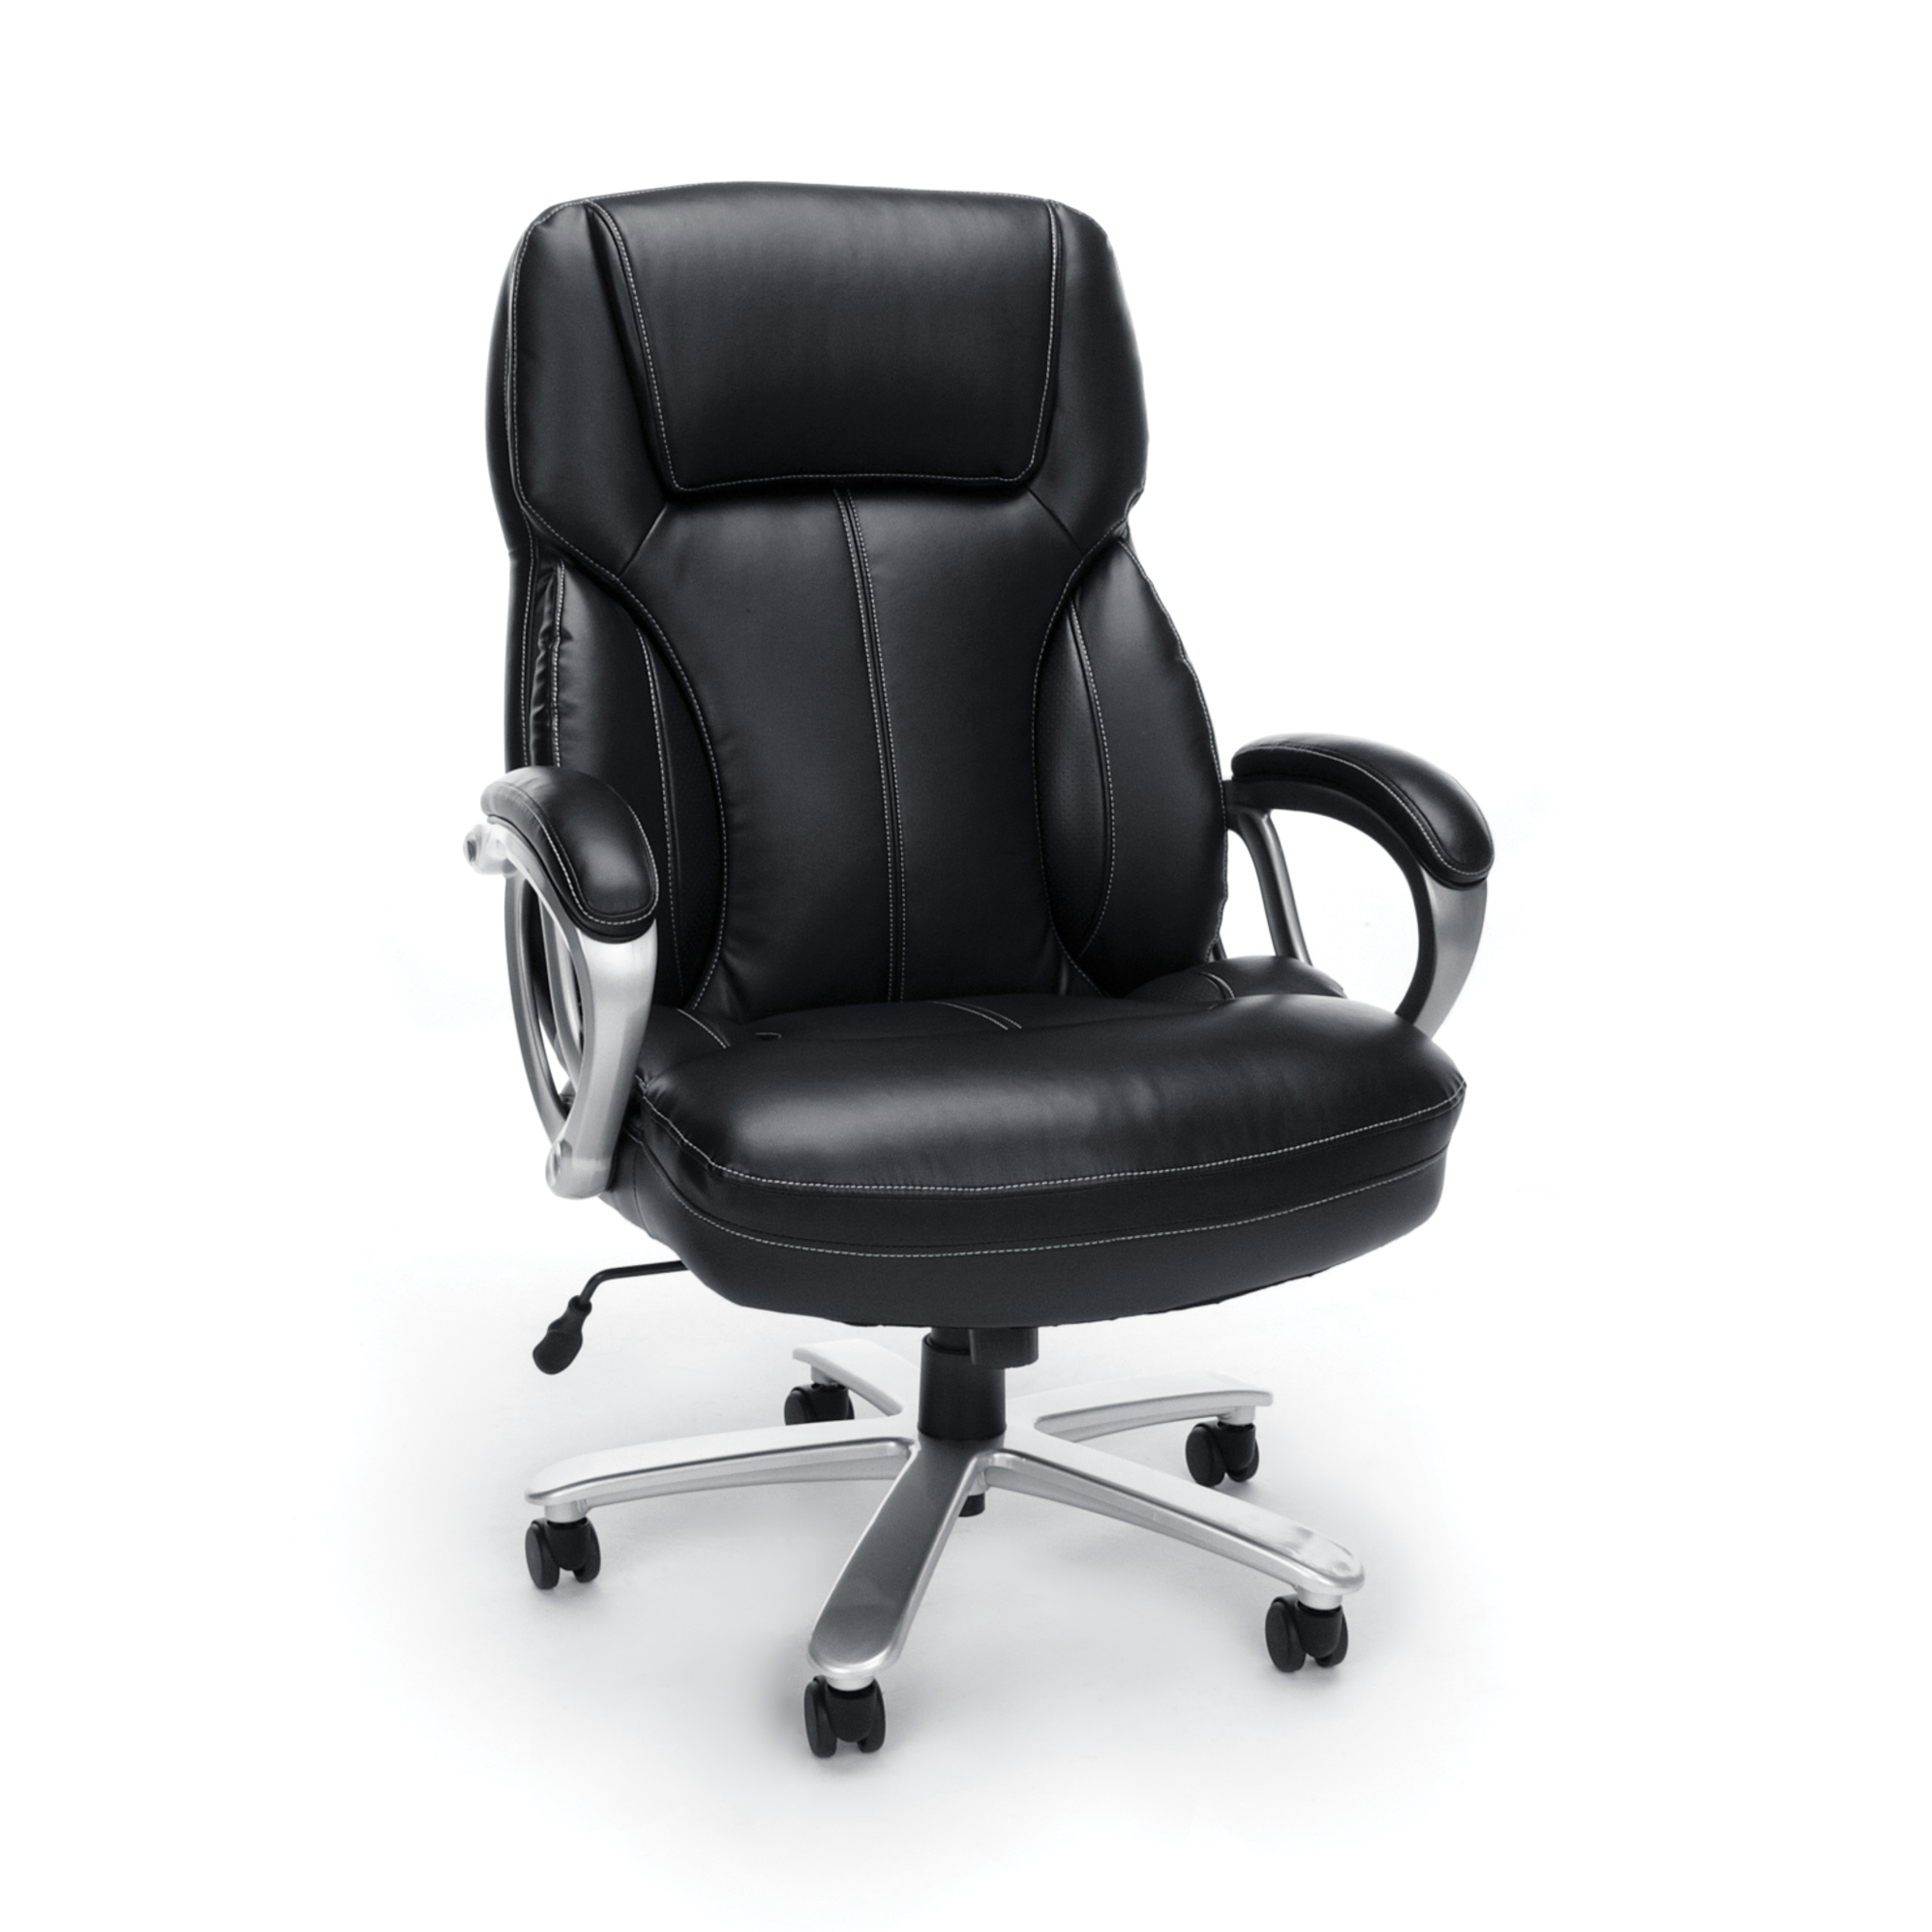 Essentials By OFM ESS 202 Big And Tall Leather Executive Office Chair With  Arms, Black/Silver   Walmart.com